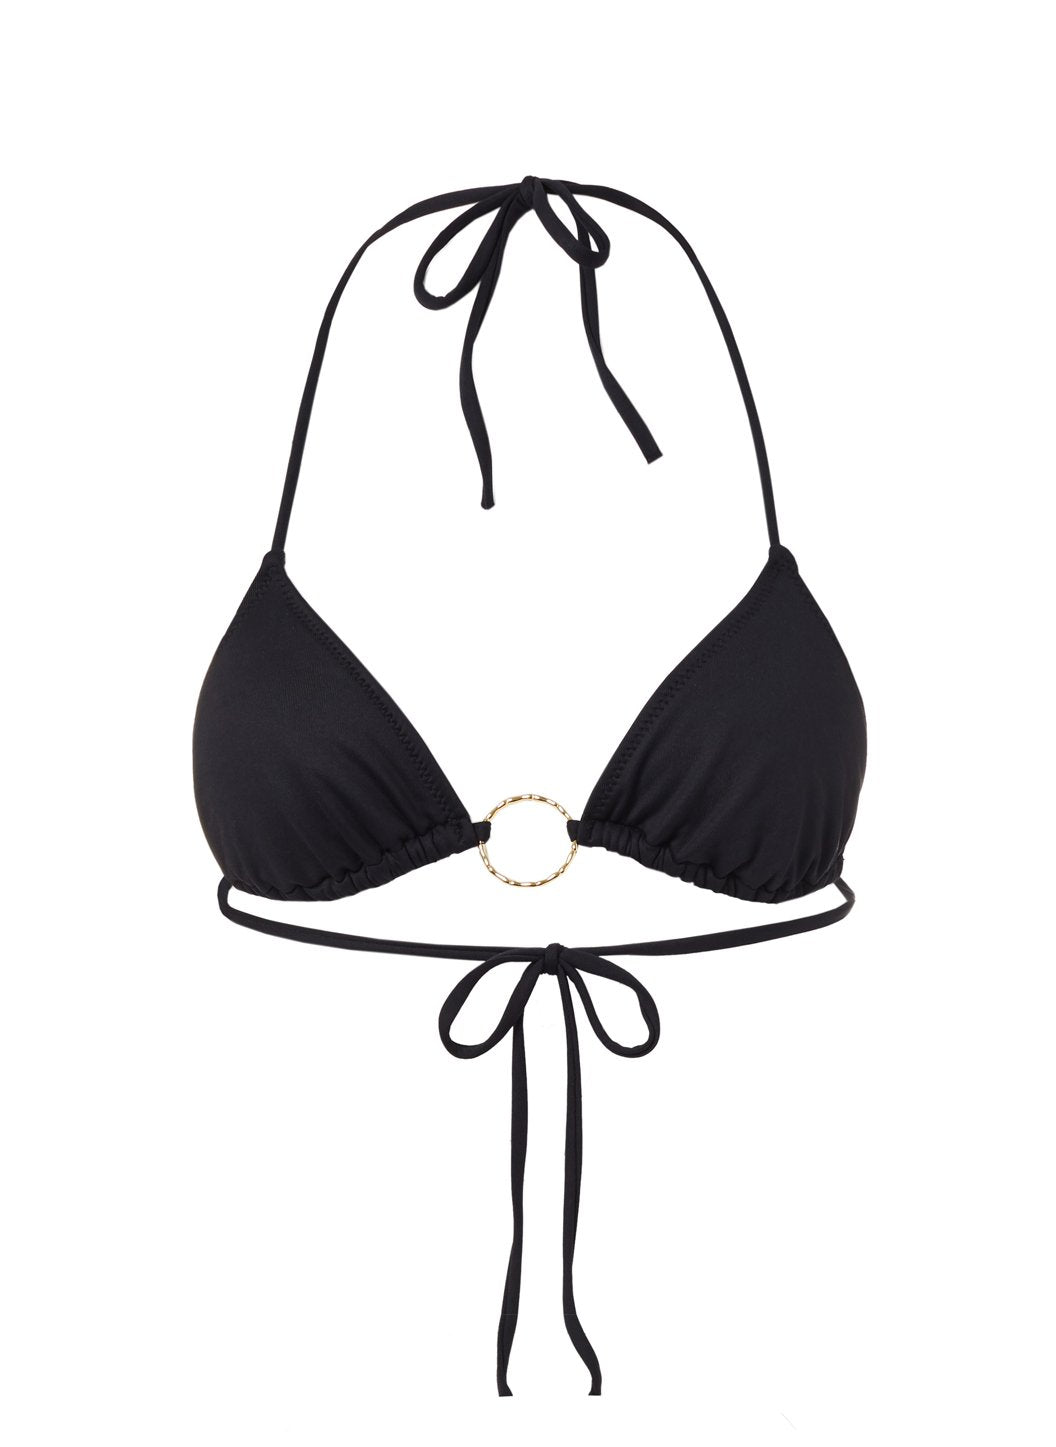 Miami Black Triangle Ring Bikini Top